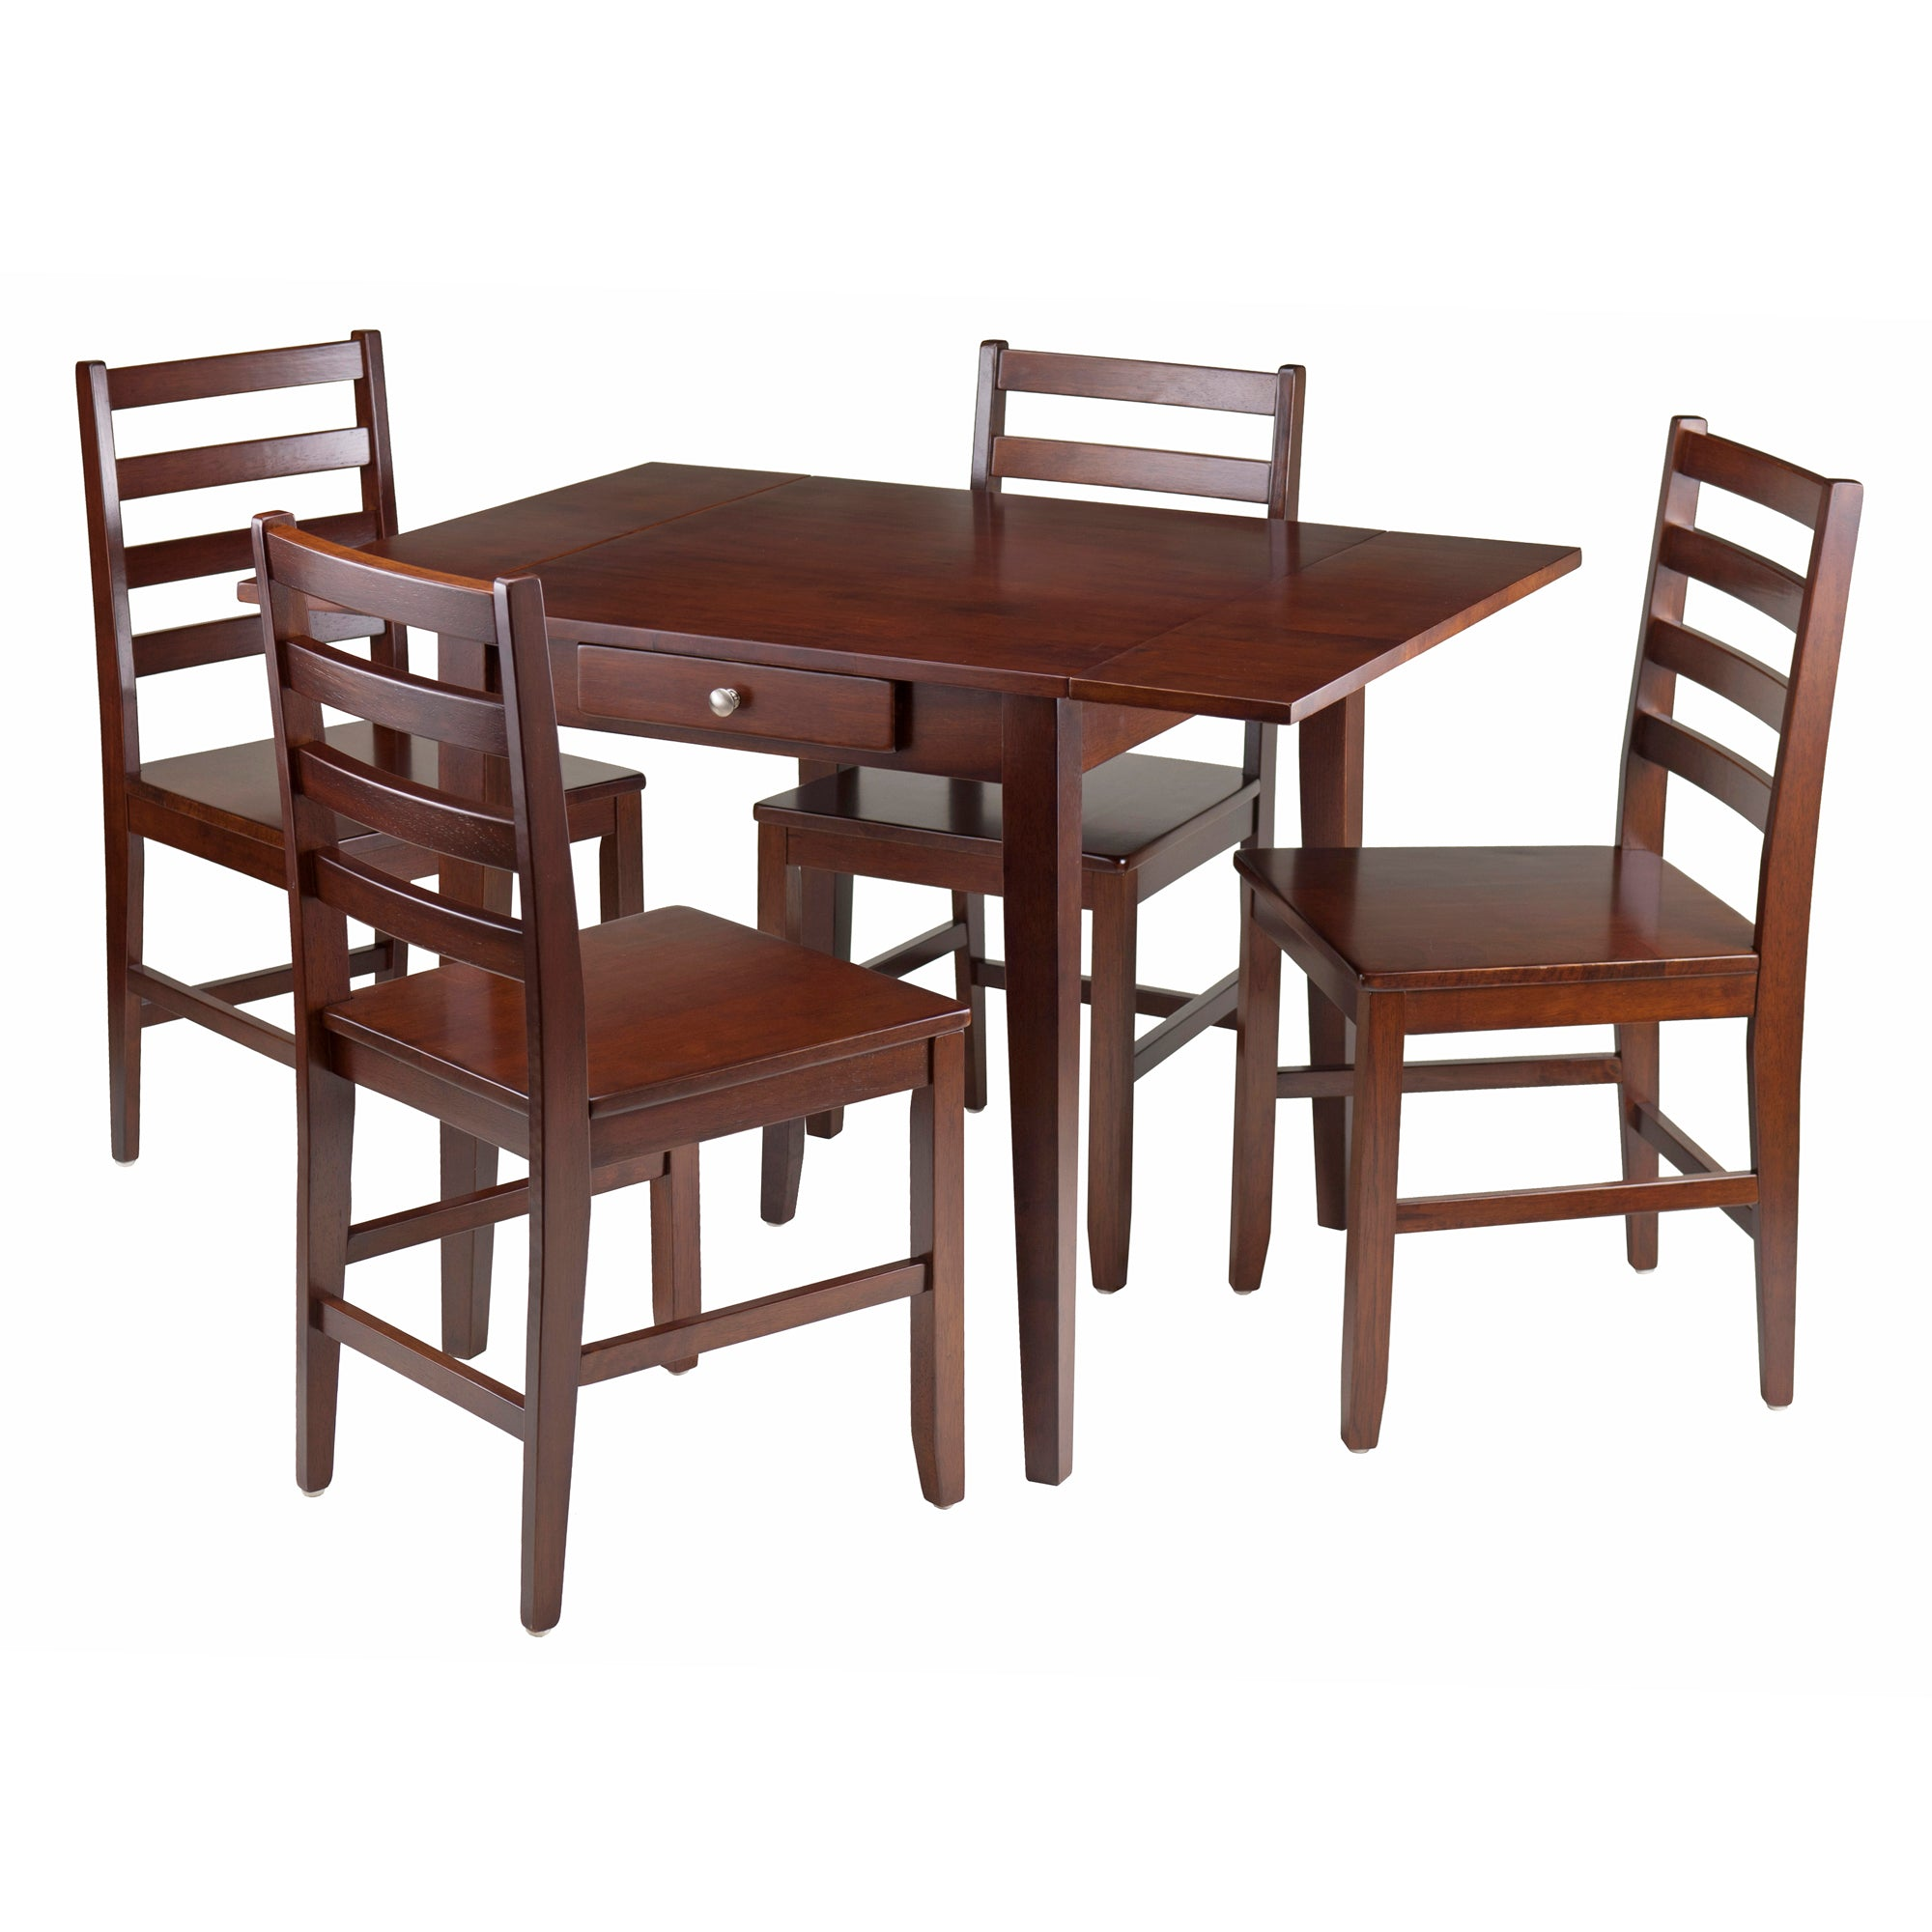 Hamilton 5-Piece Drop Leaf Dining Table With 4 Ladder Back Chairs - Pot Racks Plus